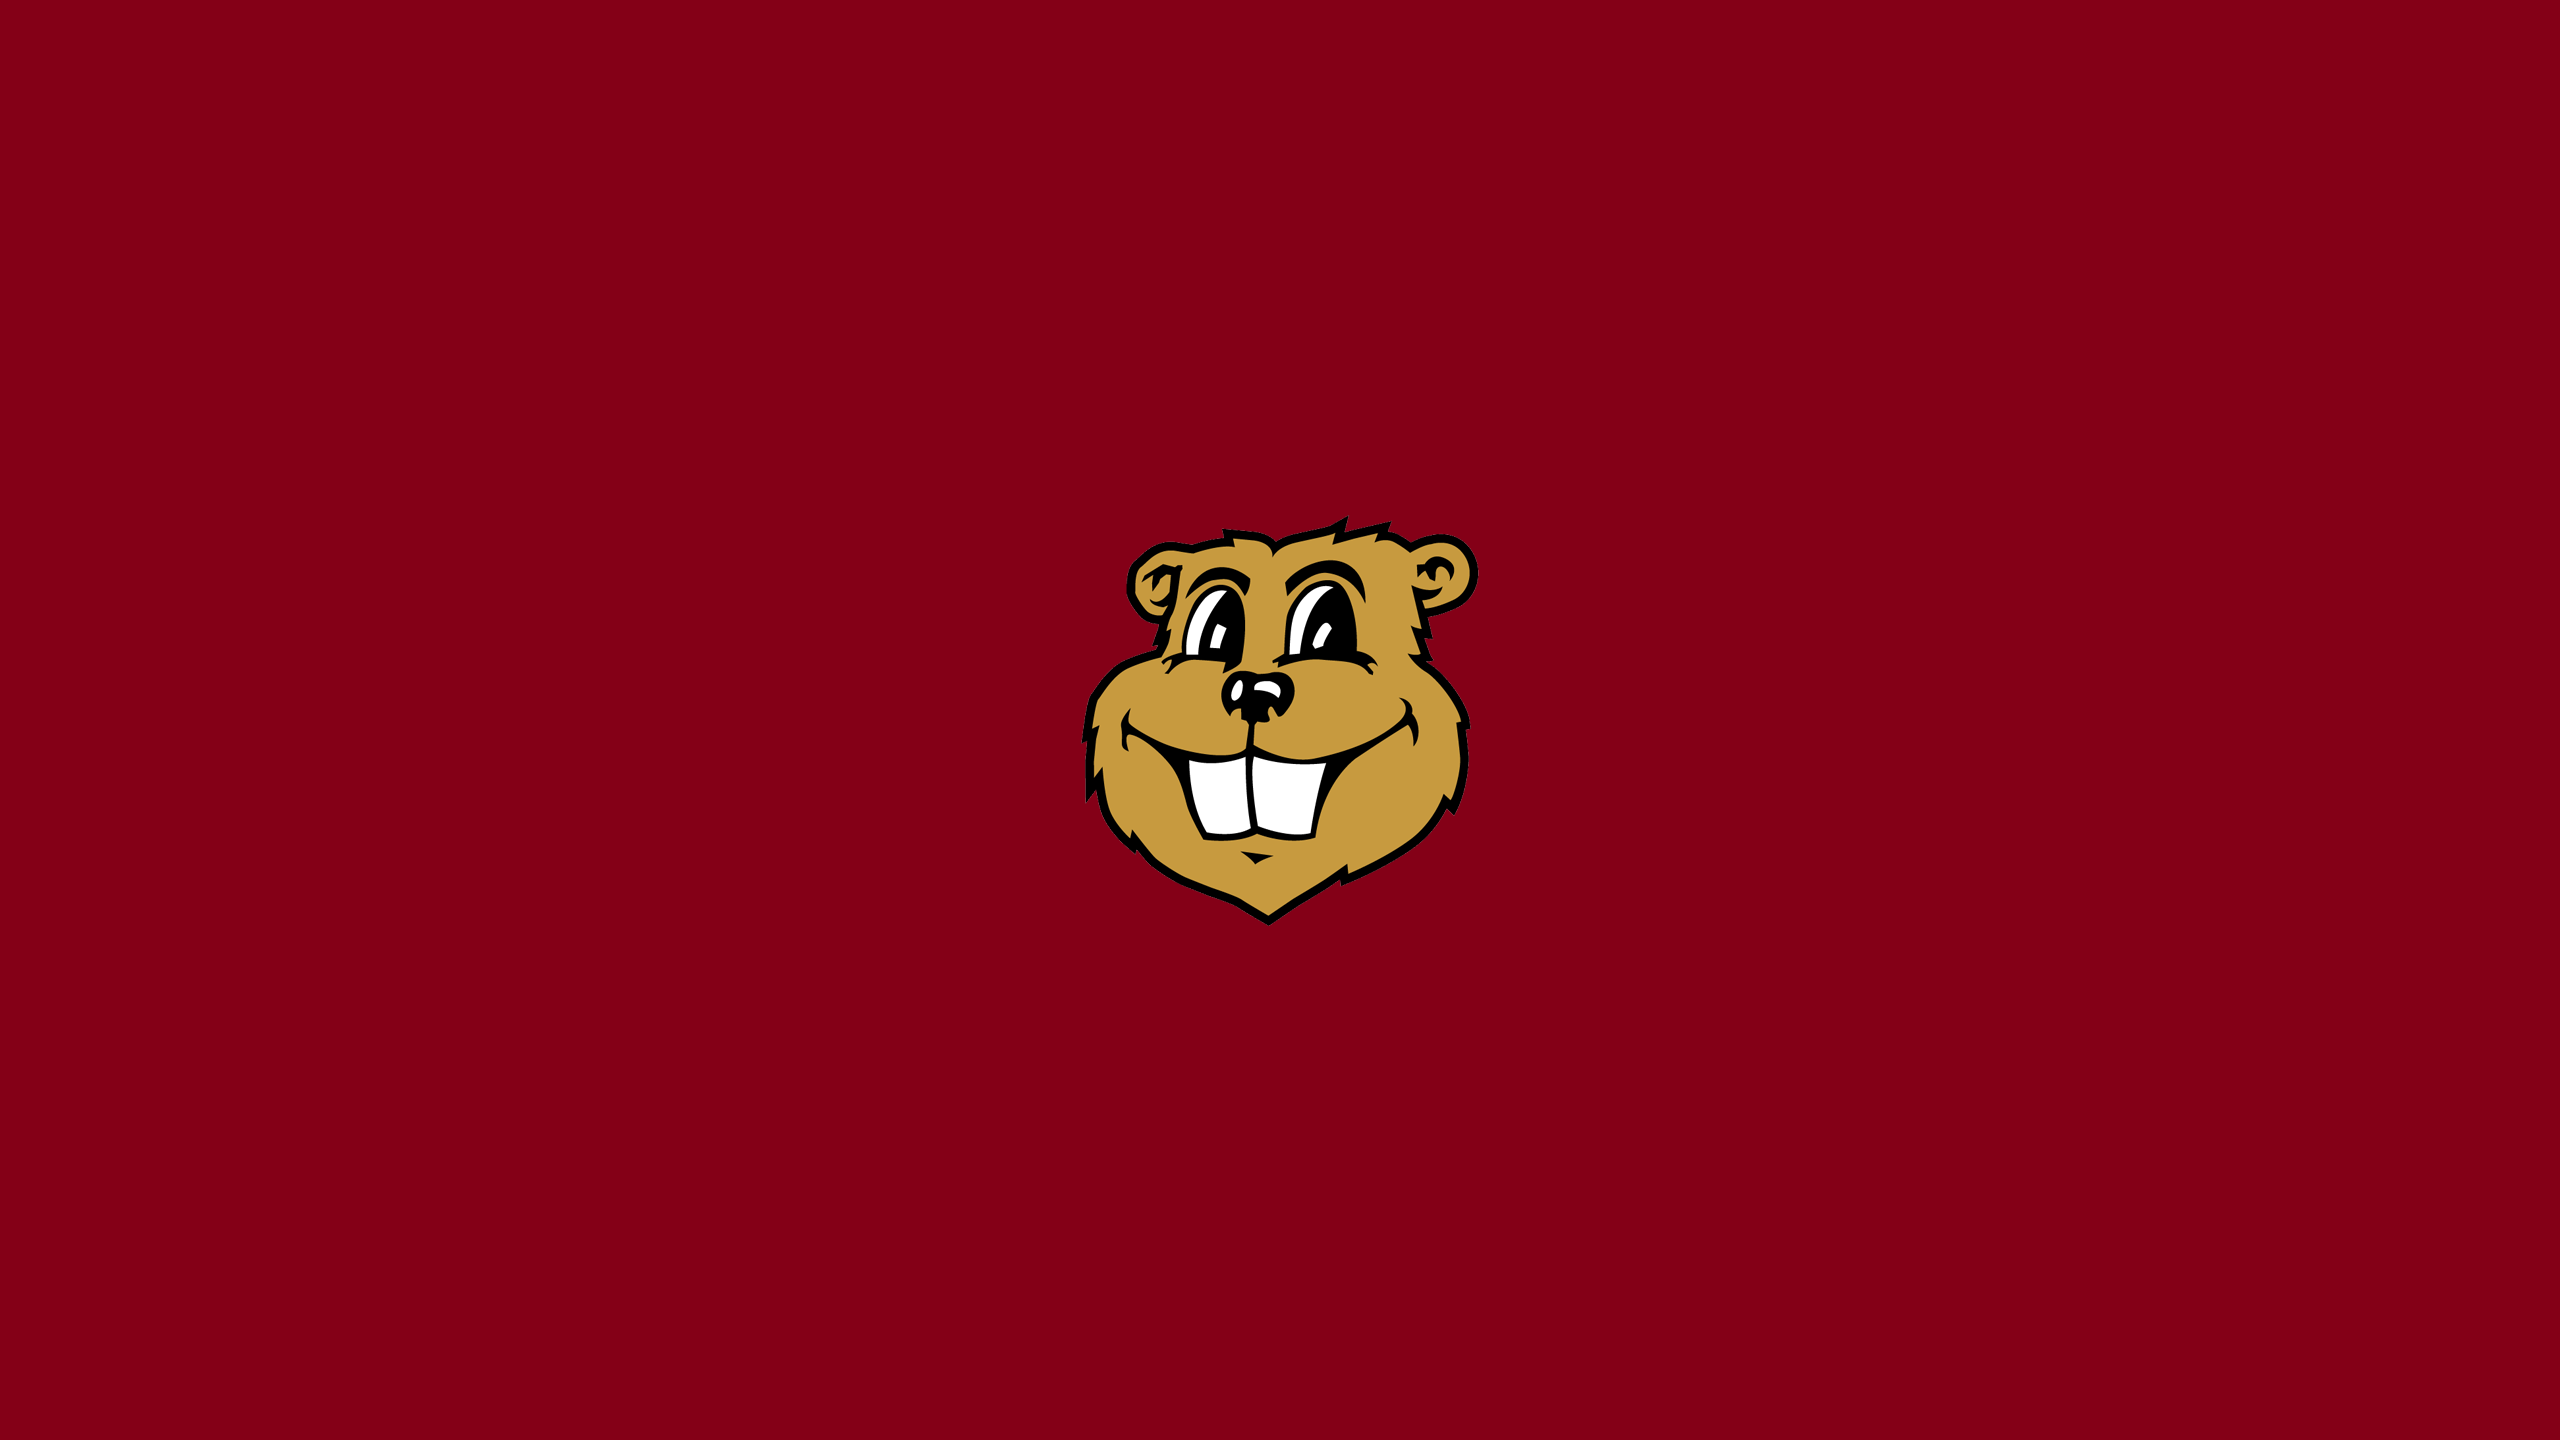 University of MInnesota Golden Gophers